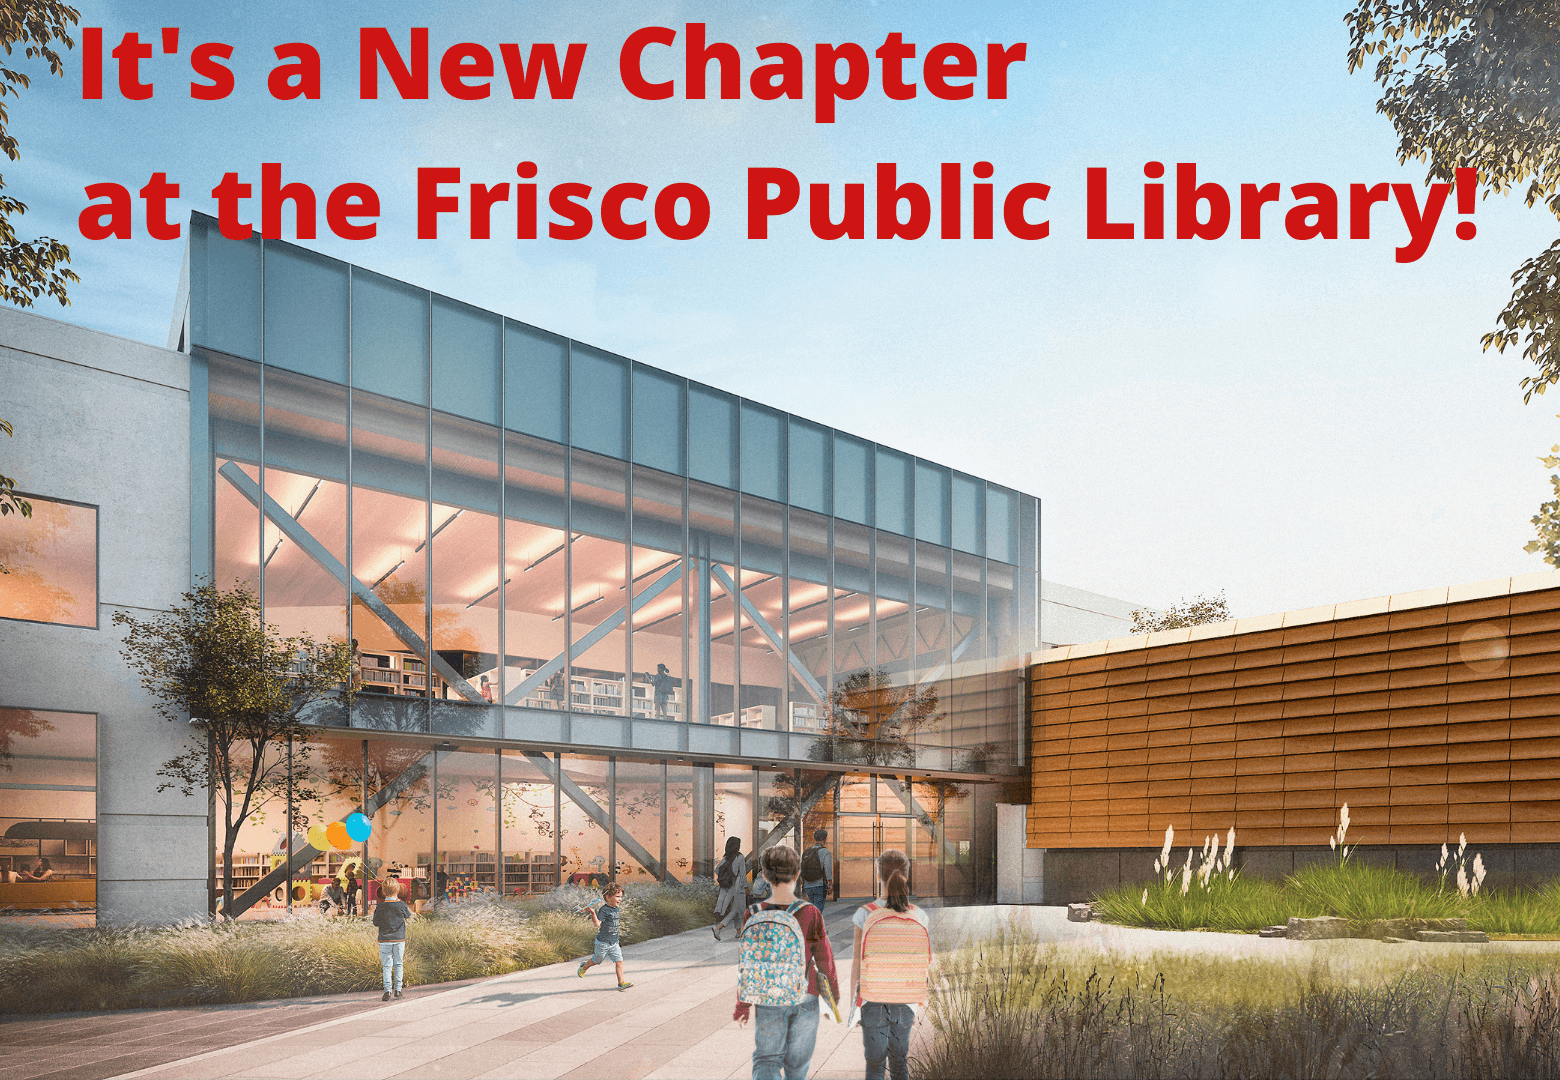 Main Entry of new Frisco Public Library